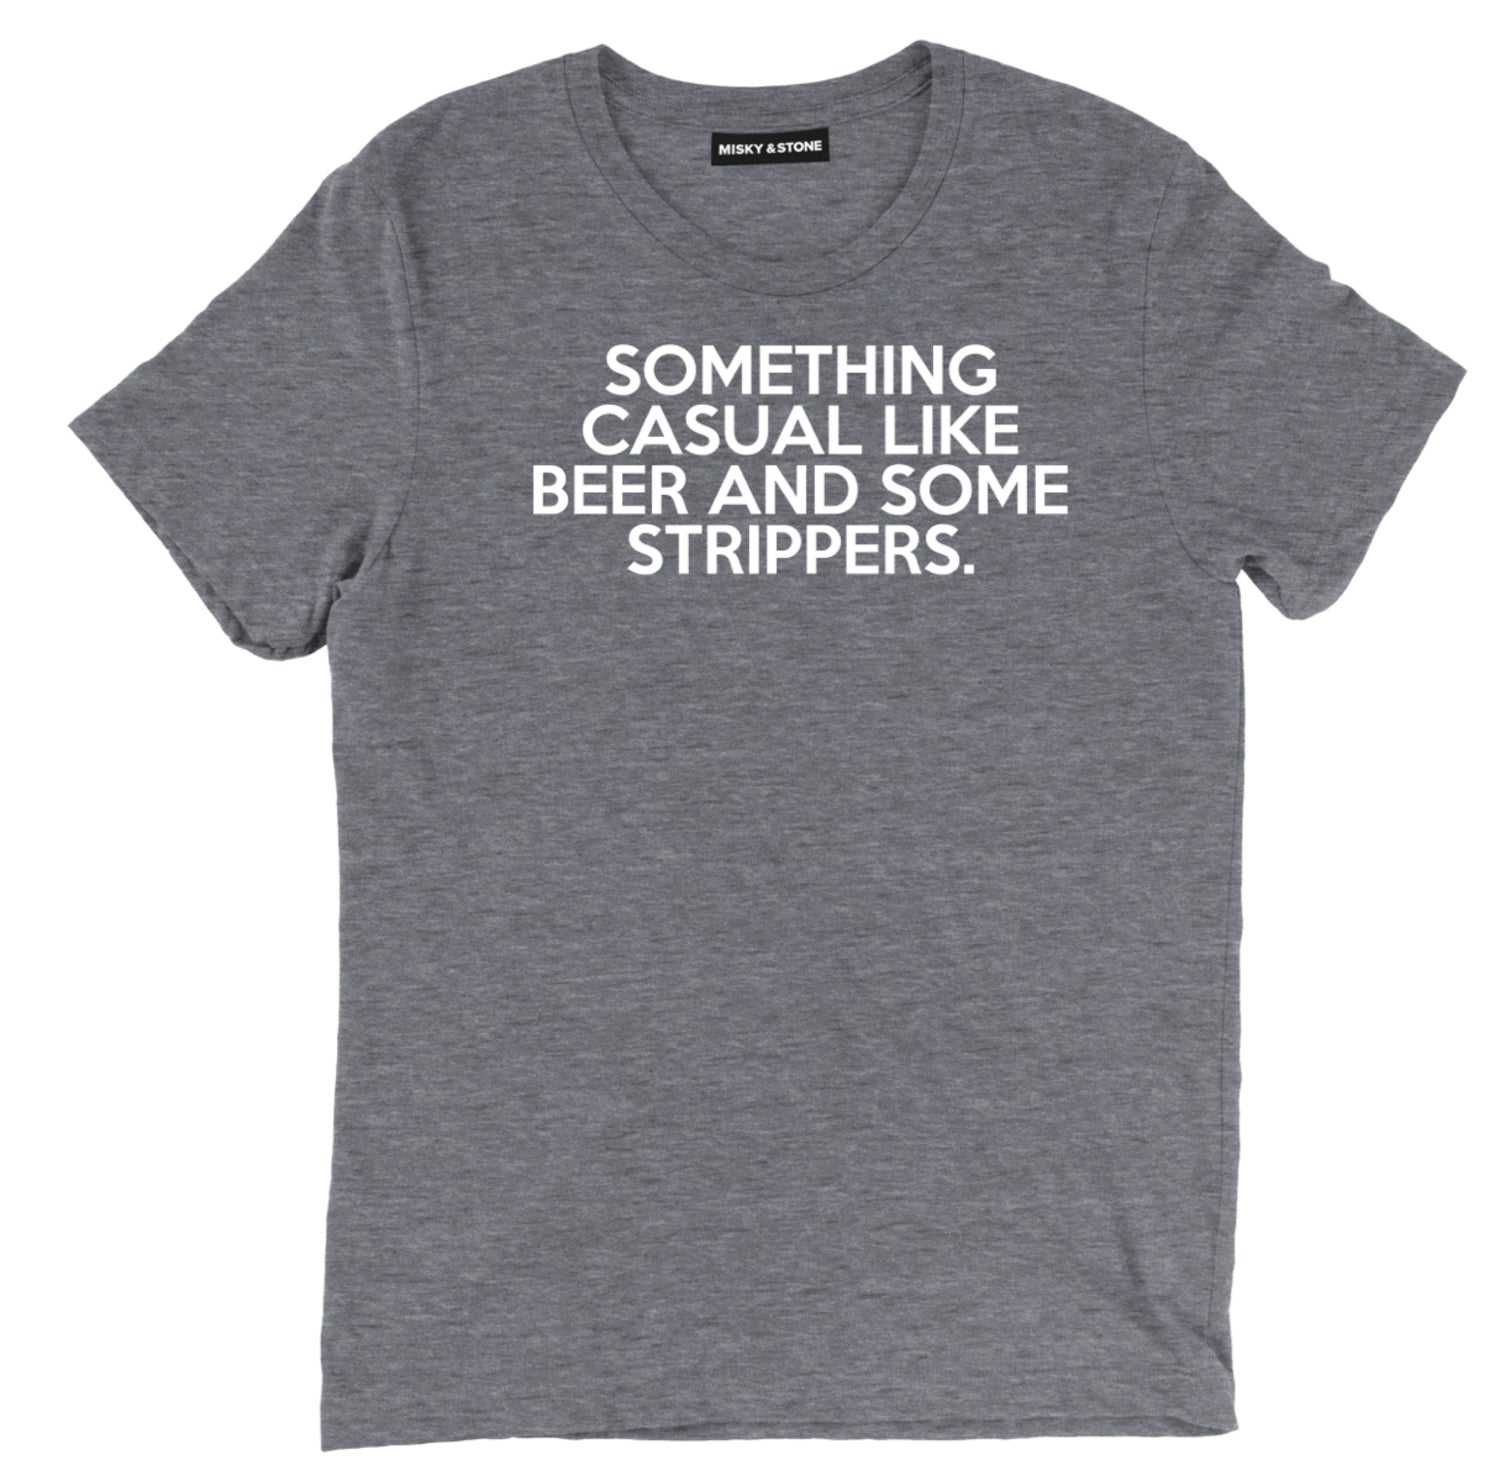 beer and strippers sarcastic t shirts, beer sarcastic shirts, strippers sarcastic tee shirts, casual strippers sarcastic tees, sarcastic t shirt sayings, sarcastic t shirts quotes, funny sarcastic t shirts,